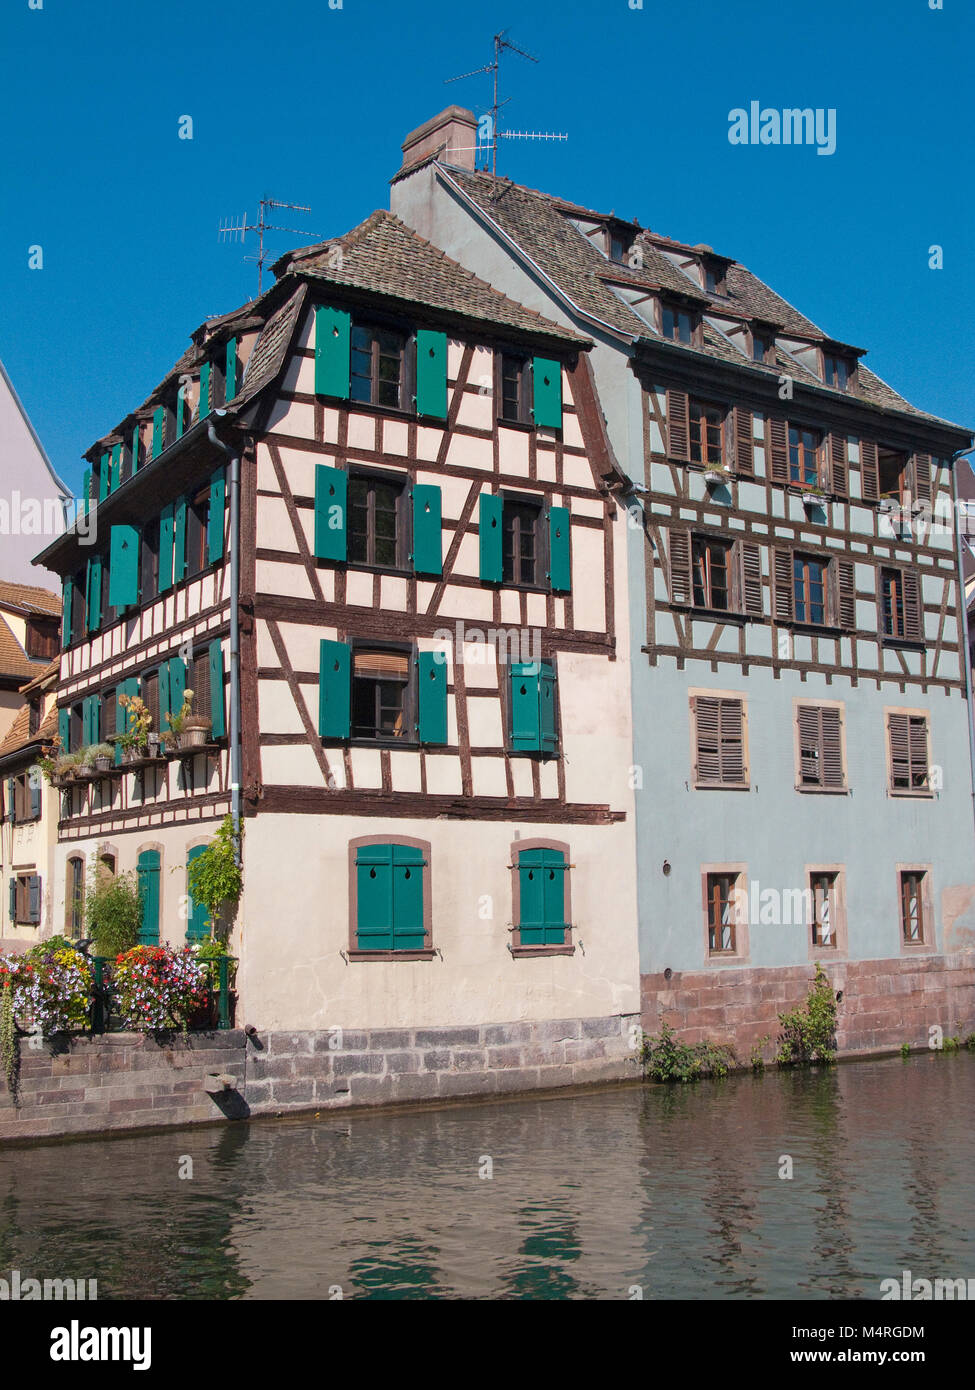 Half-timbered houses at Ill river, La Petite France (Little France), Strasbourg, Alsace, Bas-Rhin, France, Europe - Stock Image